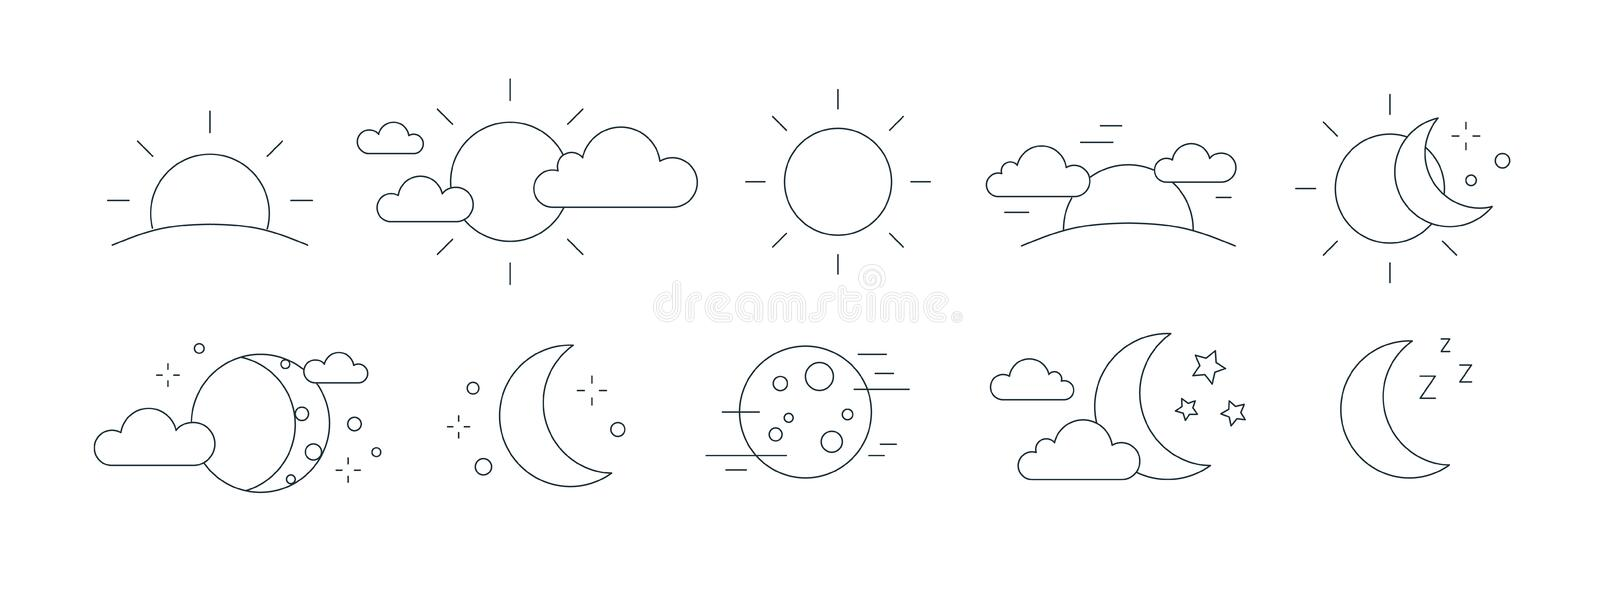 Collection of rising or setting sun, moon phases, clouds and stars symbols. Bundle of day and night time pictograms vector illustration